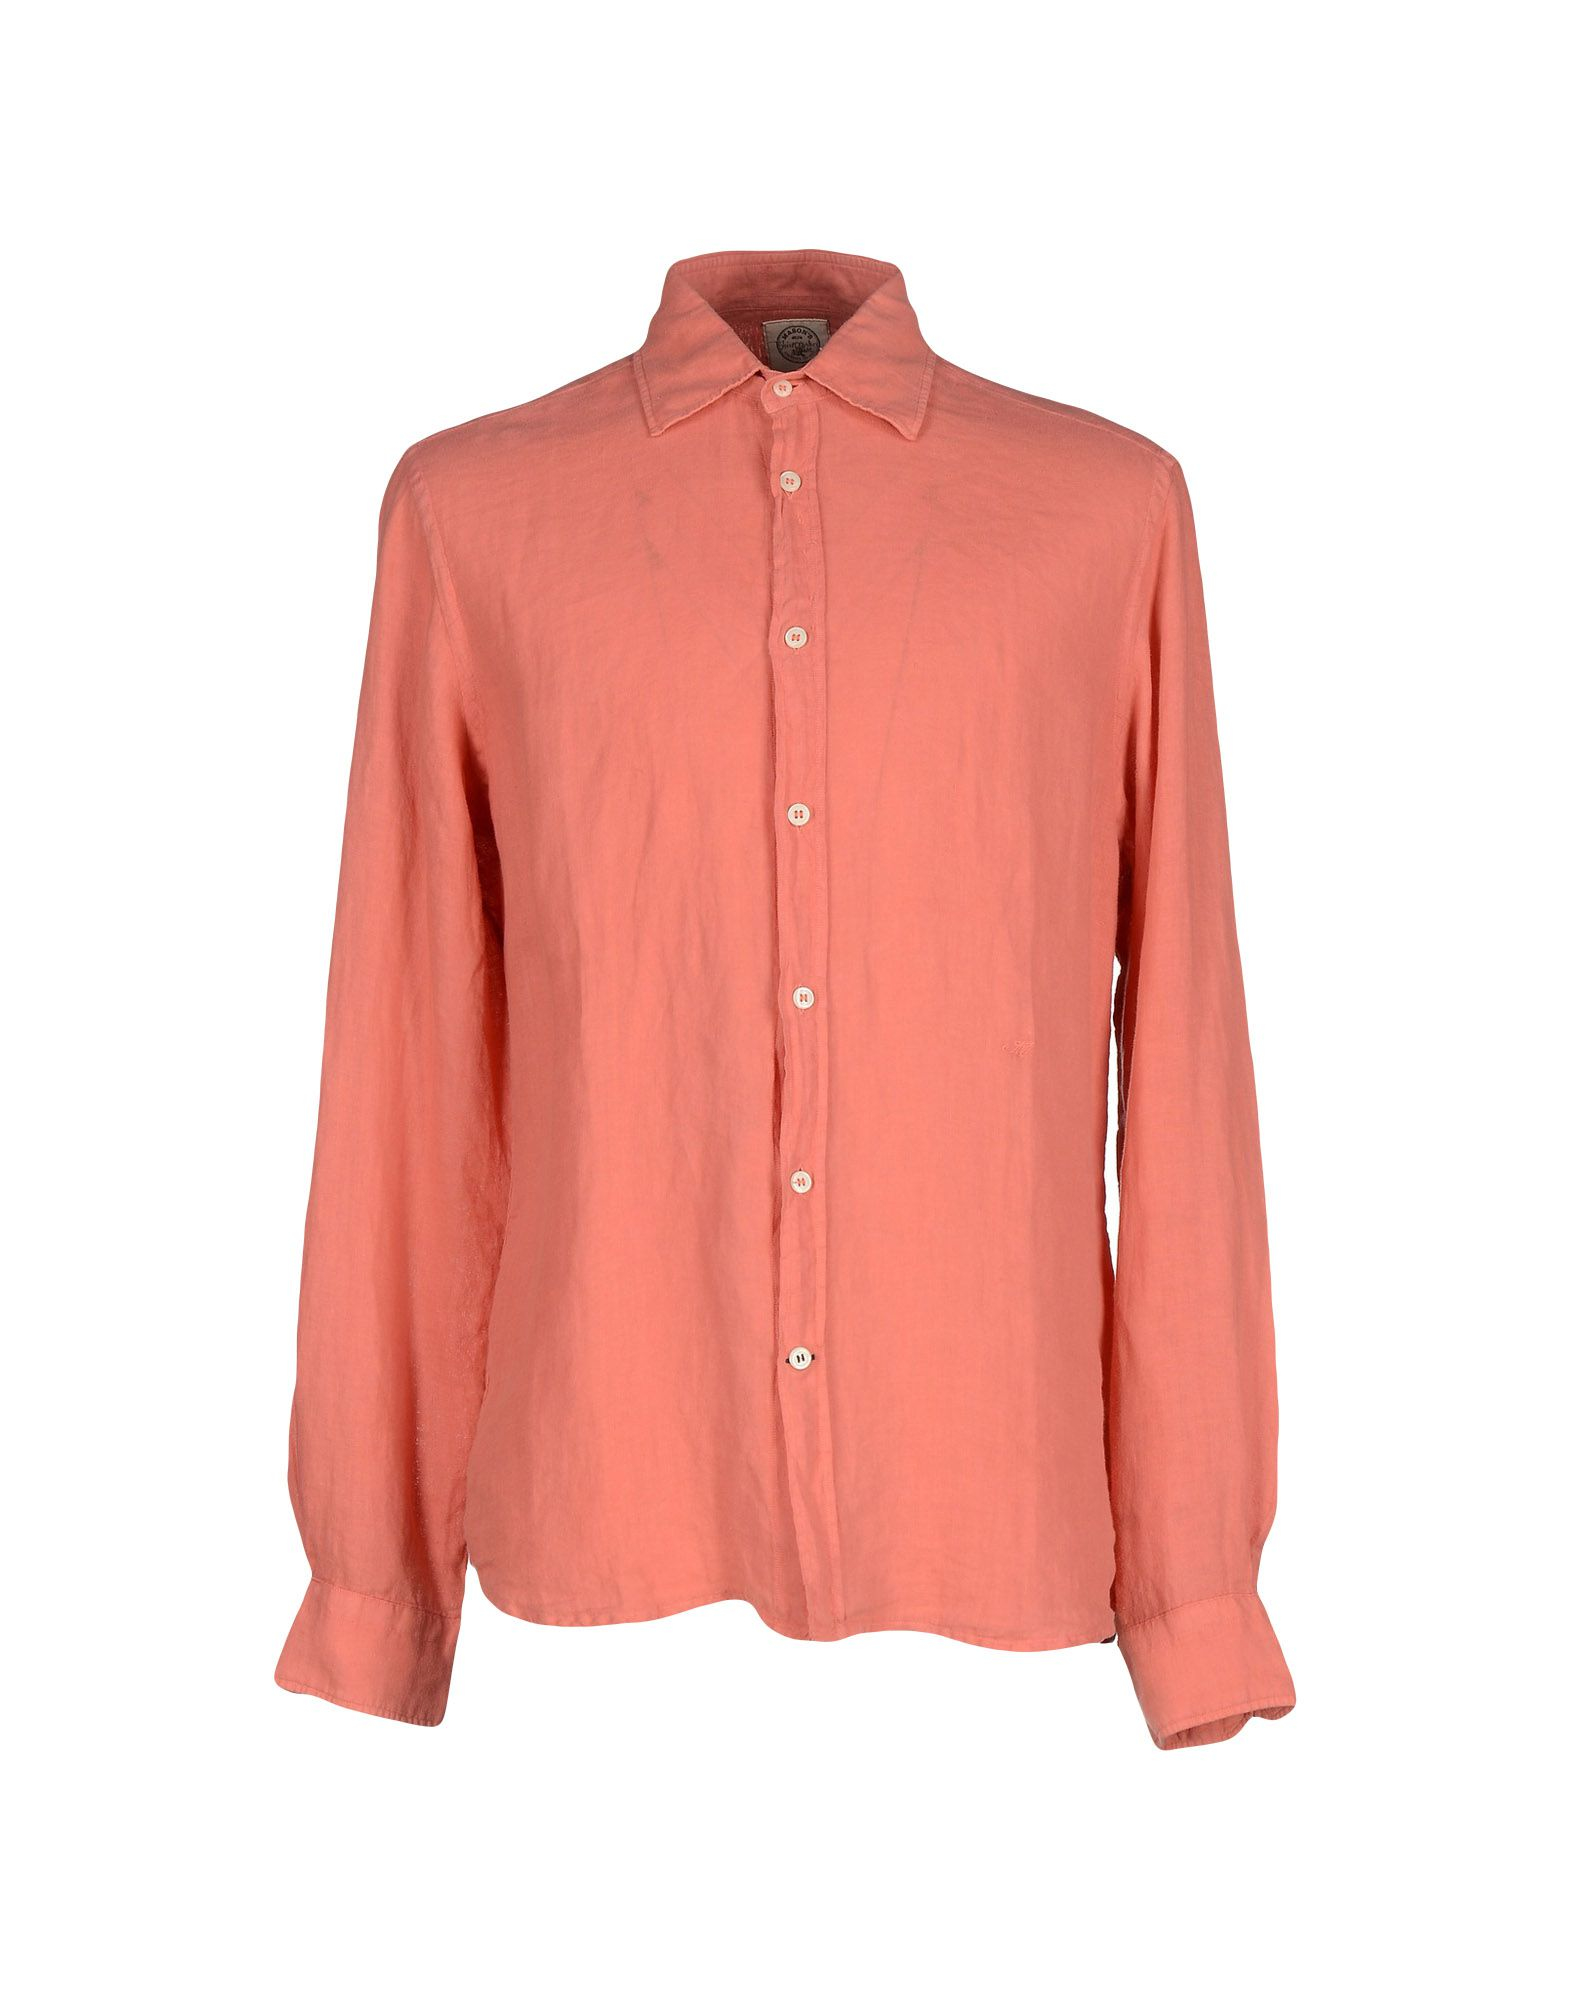 Mason 39 s shirt in pink for men salmon pink save 23 lyst for Mason s men s shirts